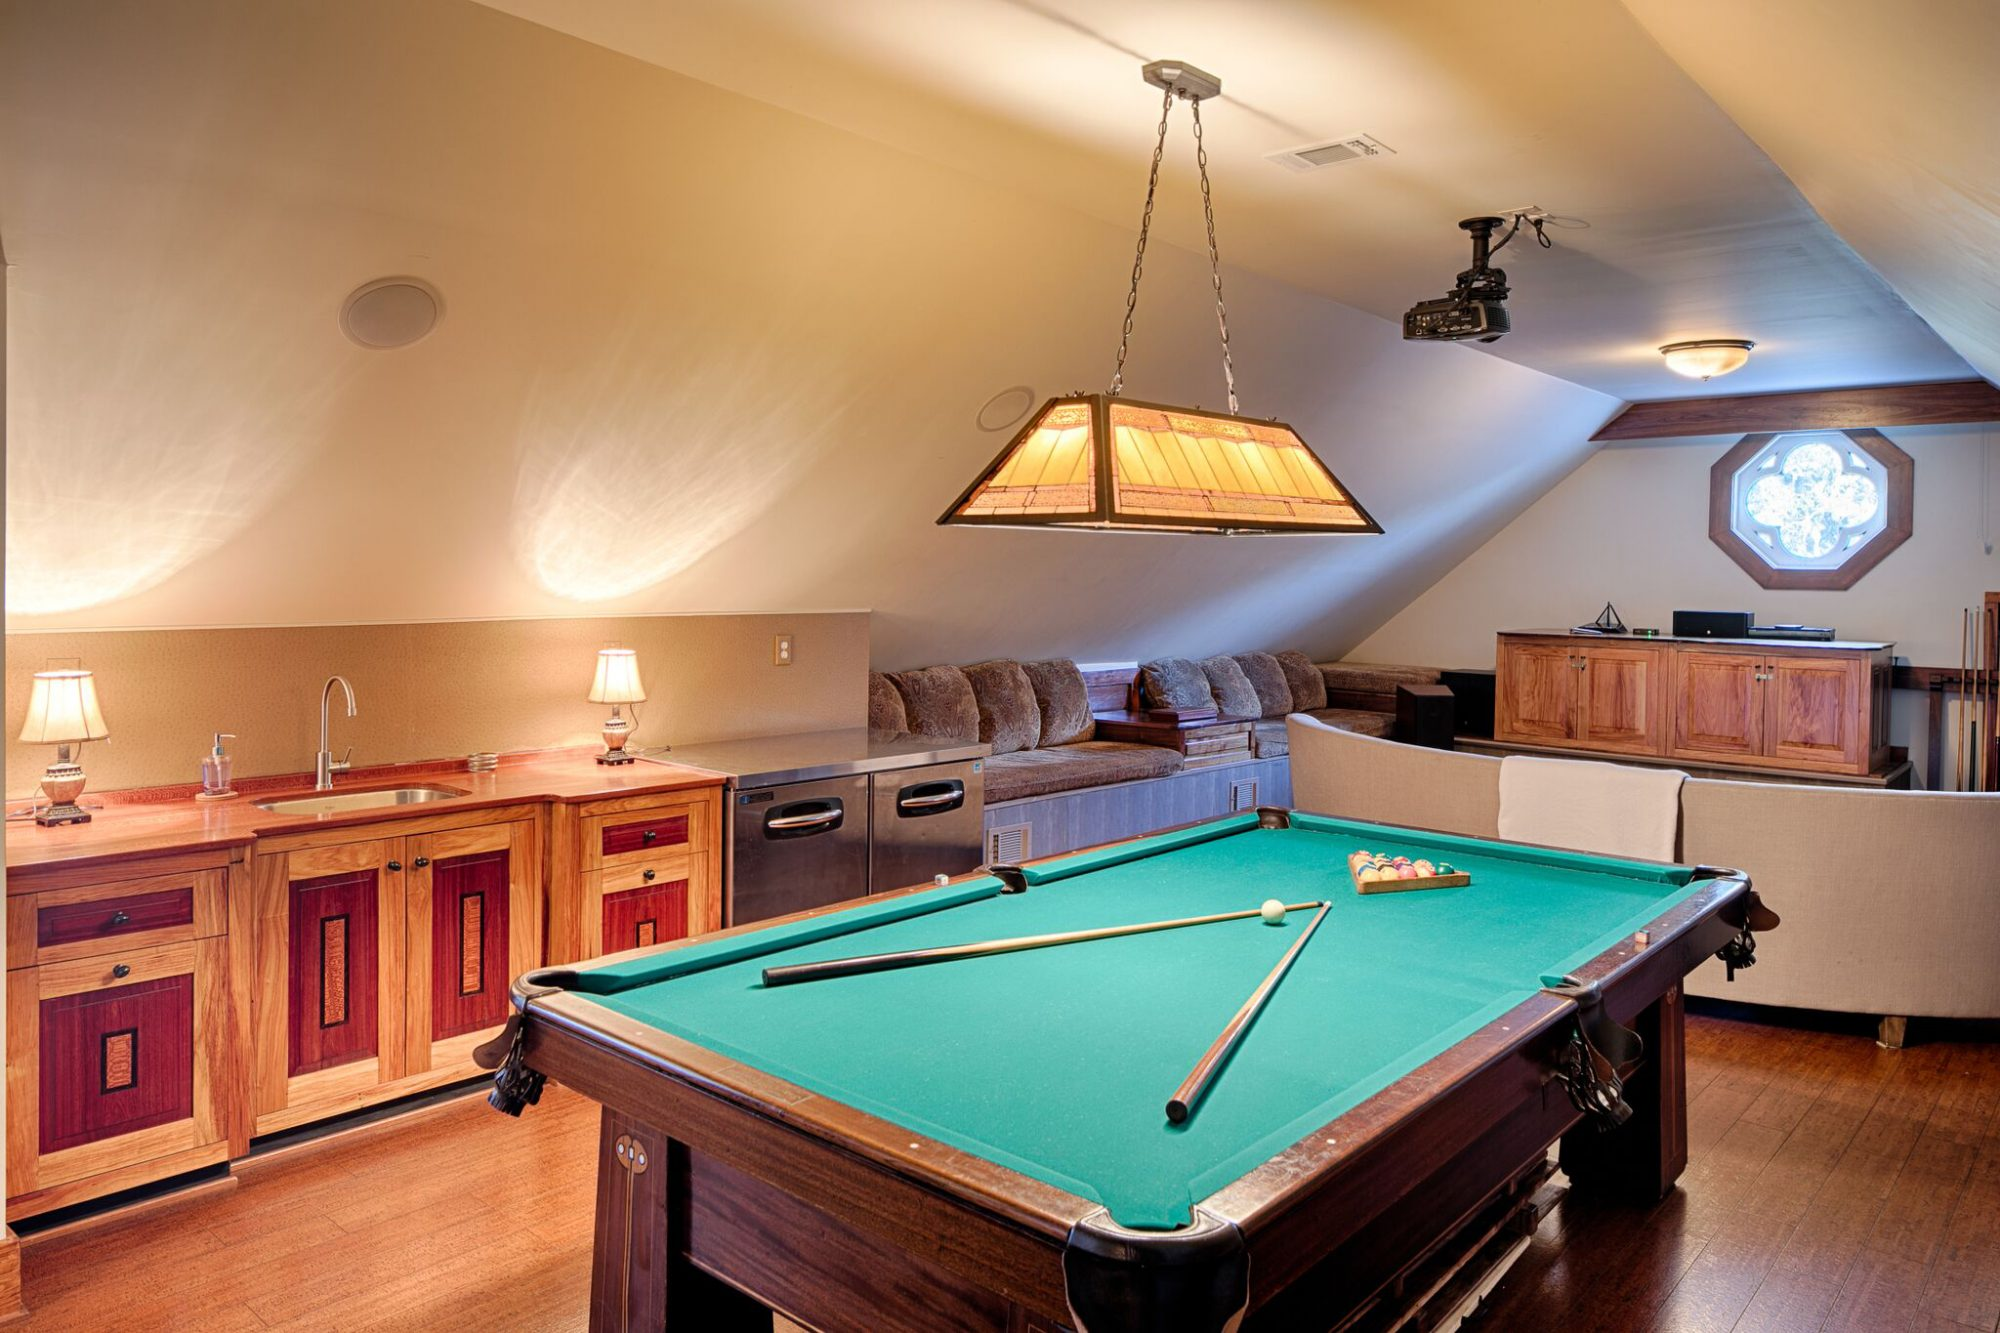 On the upper level, the billiards room has a wet bar and-of-the-art theater system. Behind the bookcase, there is also a secret passage to a hidden bedroom.